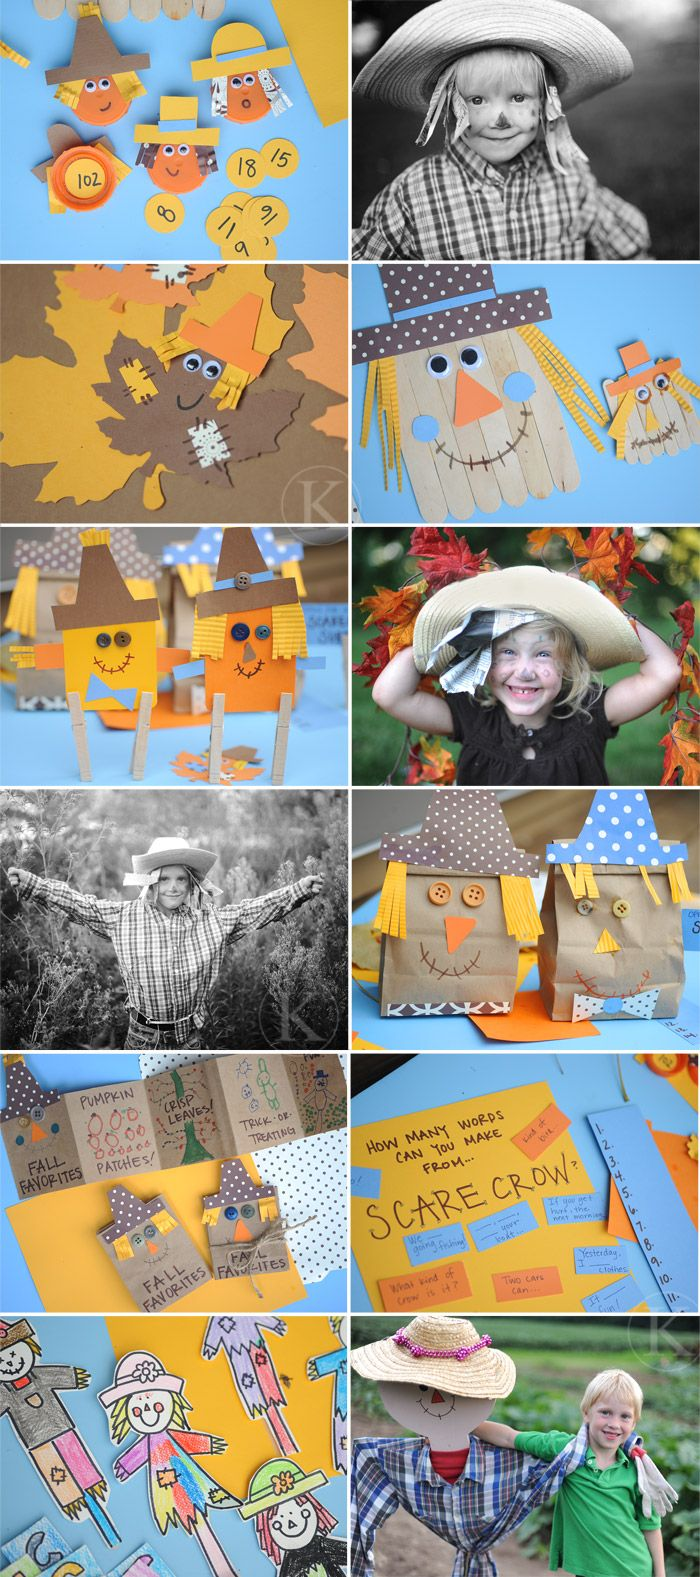 Scarecrow Activities with kidsThanksgiving Crafts, Crafts Ideas, Fall Crafts, Fall Fun, Fall Thanksgiving, Kids Crafts, Fall Activities, Scarecrows Crafts, Craft Ideas